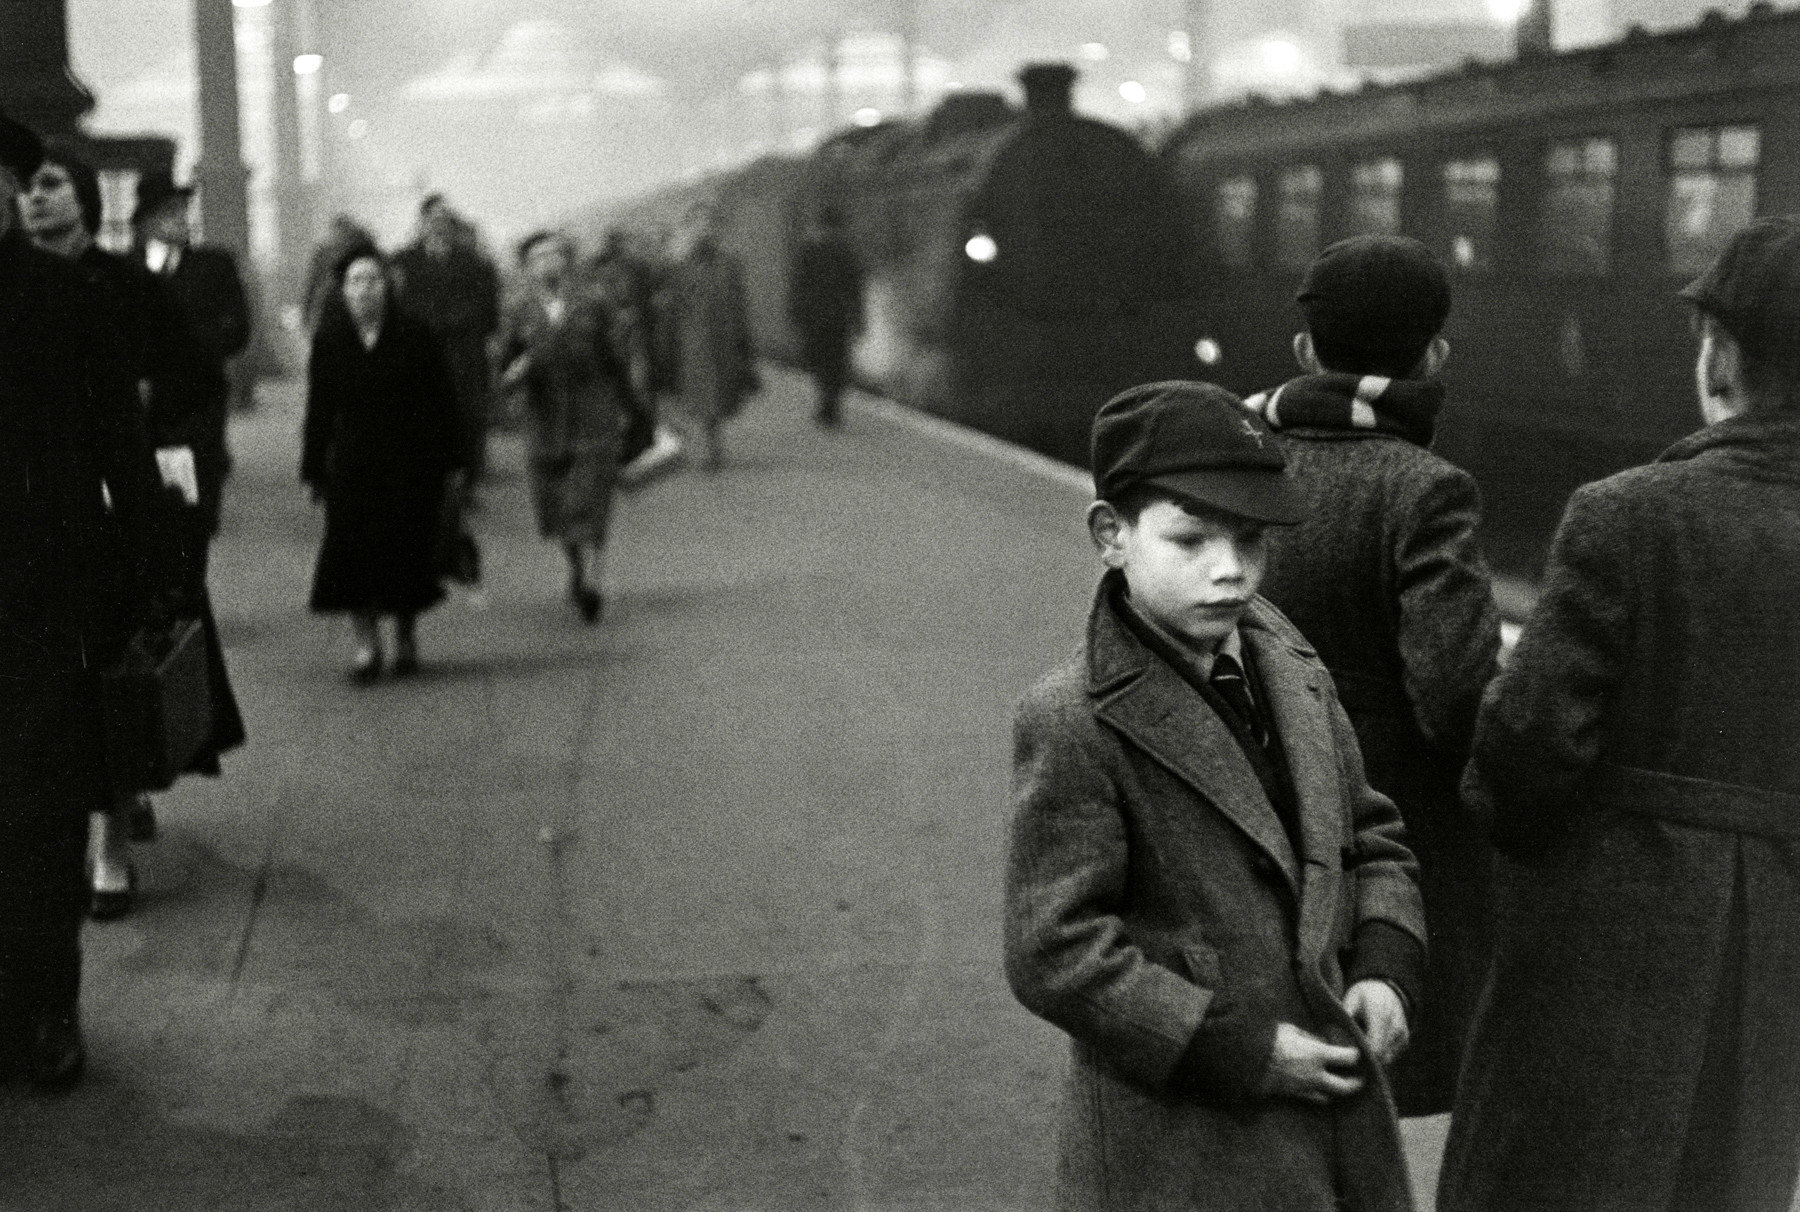 A portrait taken in London and included in a new Bruce Davidson exhibition